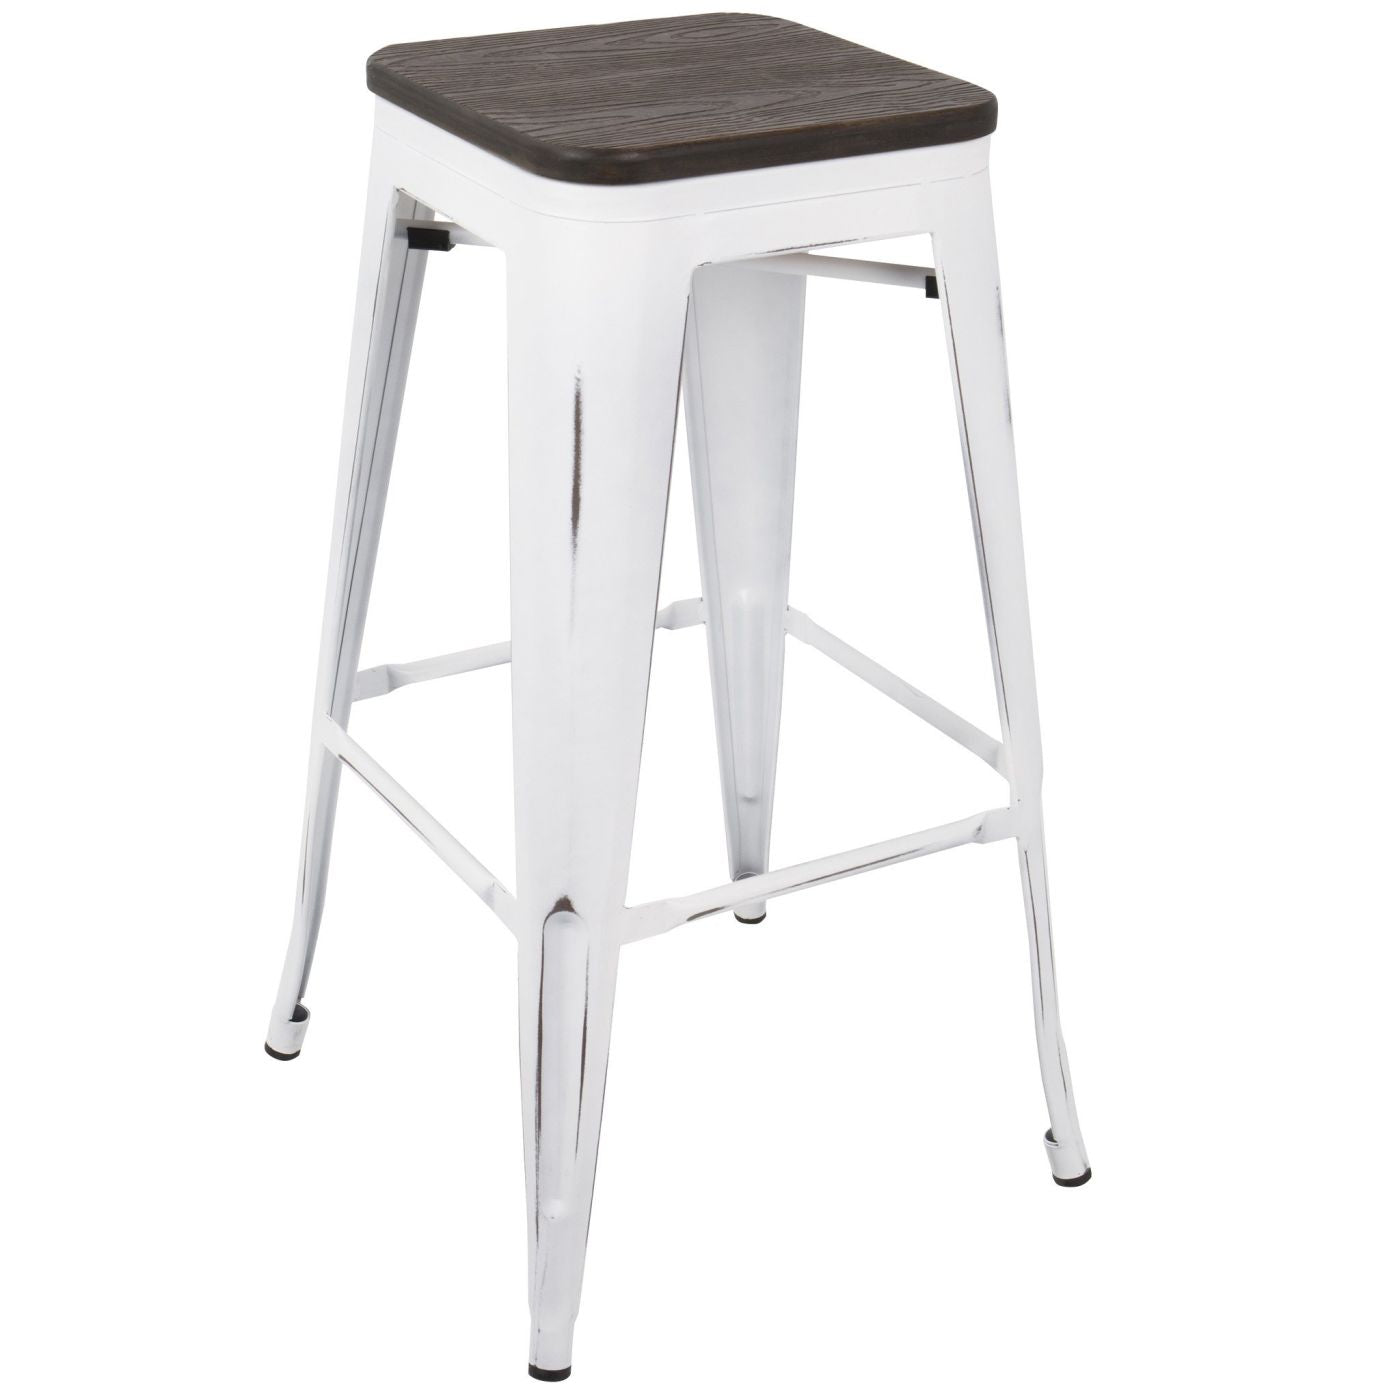 Buy Lumisource Bs Or Vw E2 Oregon Industrial Barstool